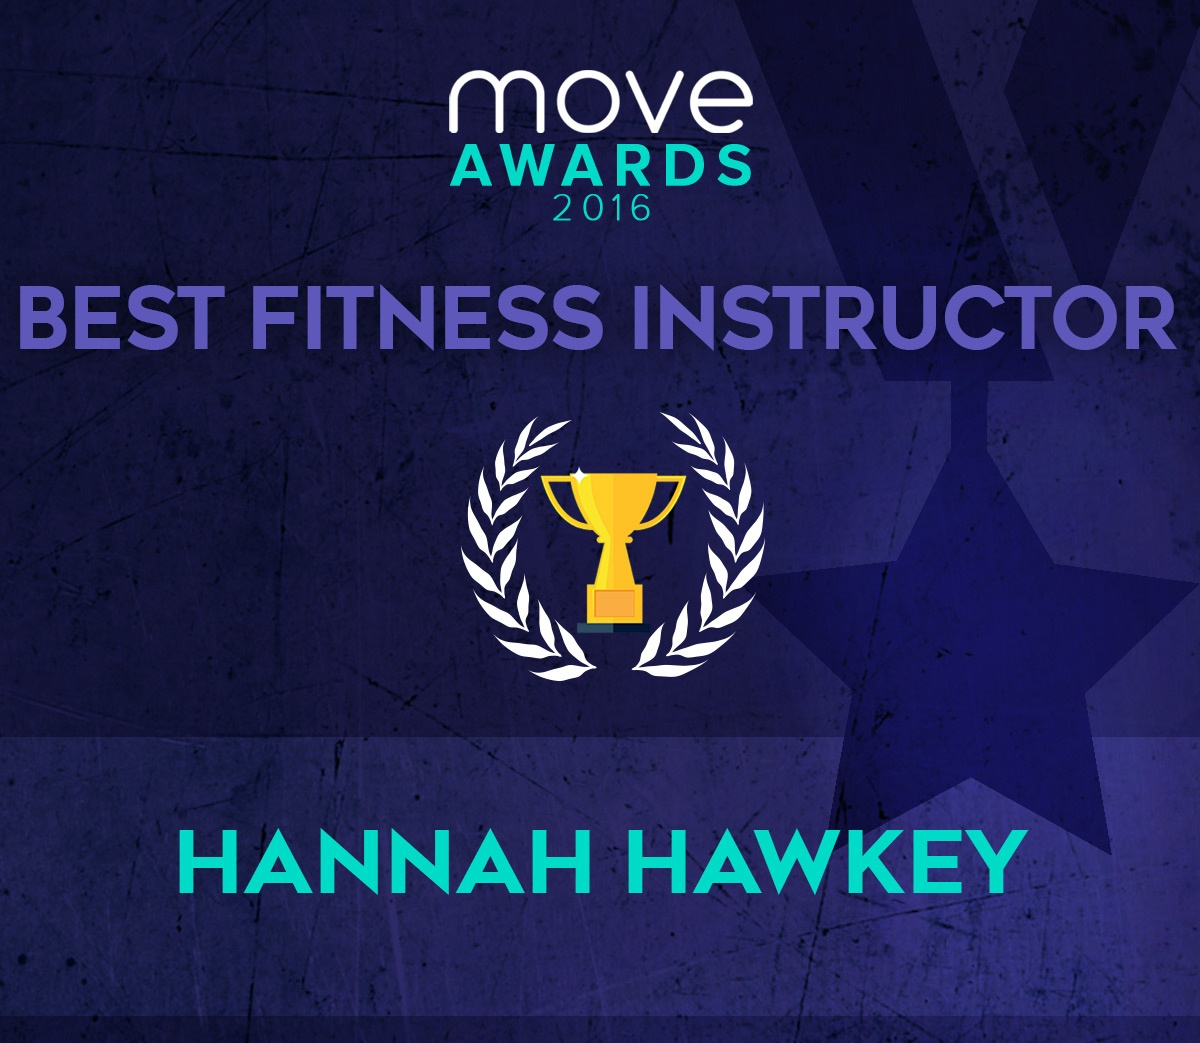 Best-Fitness-Instructor-Plymouth.jpg